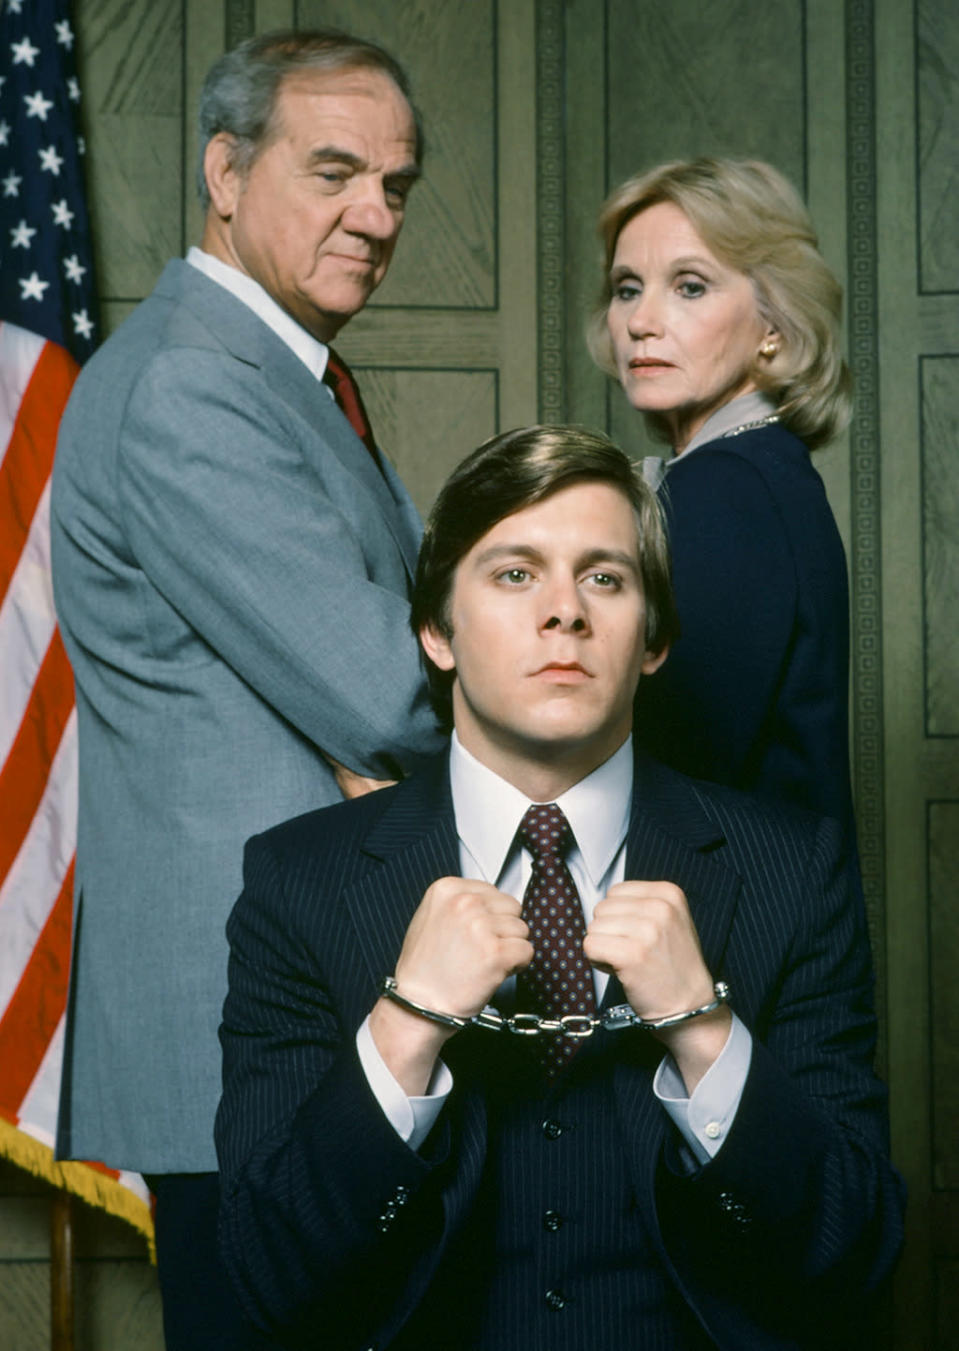 <p><b>Aired:</b> November 18, 1984 on NBC<br><b>Stars:</b> Gary Cole and Karl Malden<br><br><b>Ripped from the headlines about:</b> Army officer Jeffrey MacDonald, who was convicted of murdering his wife and young daughters at Fort Bragg in 1970. MacDonald continues to maintain his innocence — he claims hippies broke into his house and committed the murders — but his father-in-law (Emmy winner Marden) believed MacDonald, who remains in jail in Maryland serving consecutive life sentences, was guilty. The movie was based on the Joe McGinniss book account of the murders, and MacDonald cooperated for the project. He later successfully sued McGinniss, claiming the author pretended to believe in his innocence to get access for his book, which painted MacDonald as guilty. Janet Malcolm's 1990 book <i>The Journalist and the Murderer</i> examines the relationship between writer and convicted killer, and concludes that McGinniss behaved unethically. <br><br><i>(Credit: Getty Images)</i> </p>